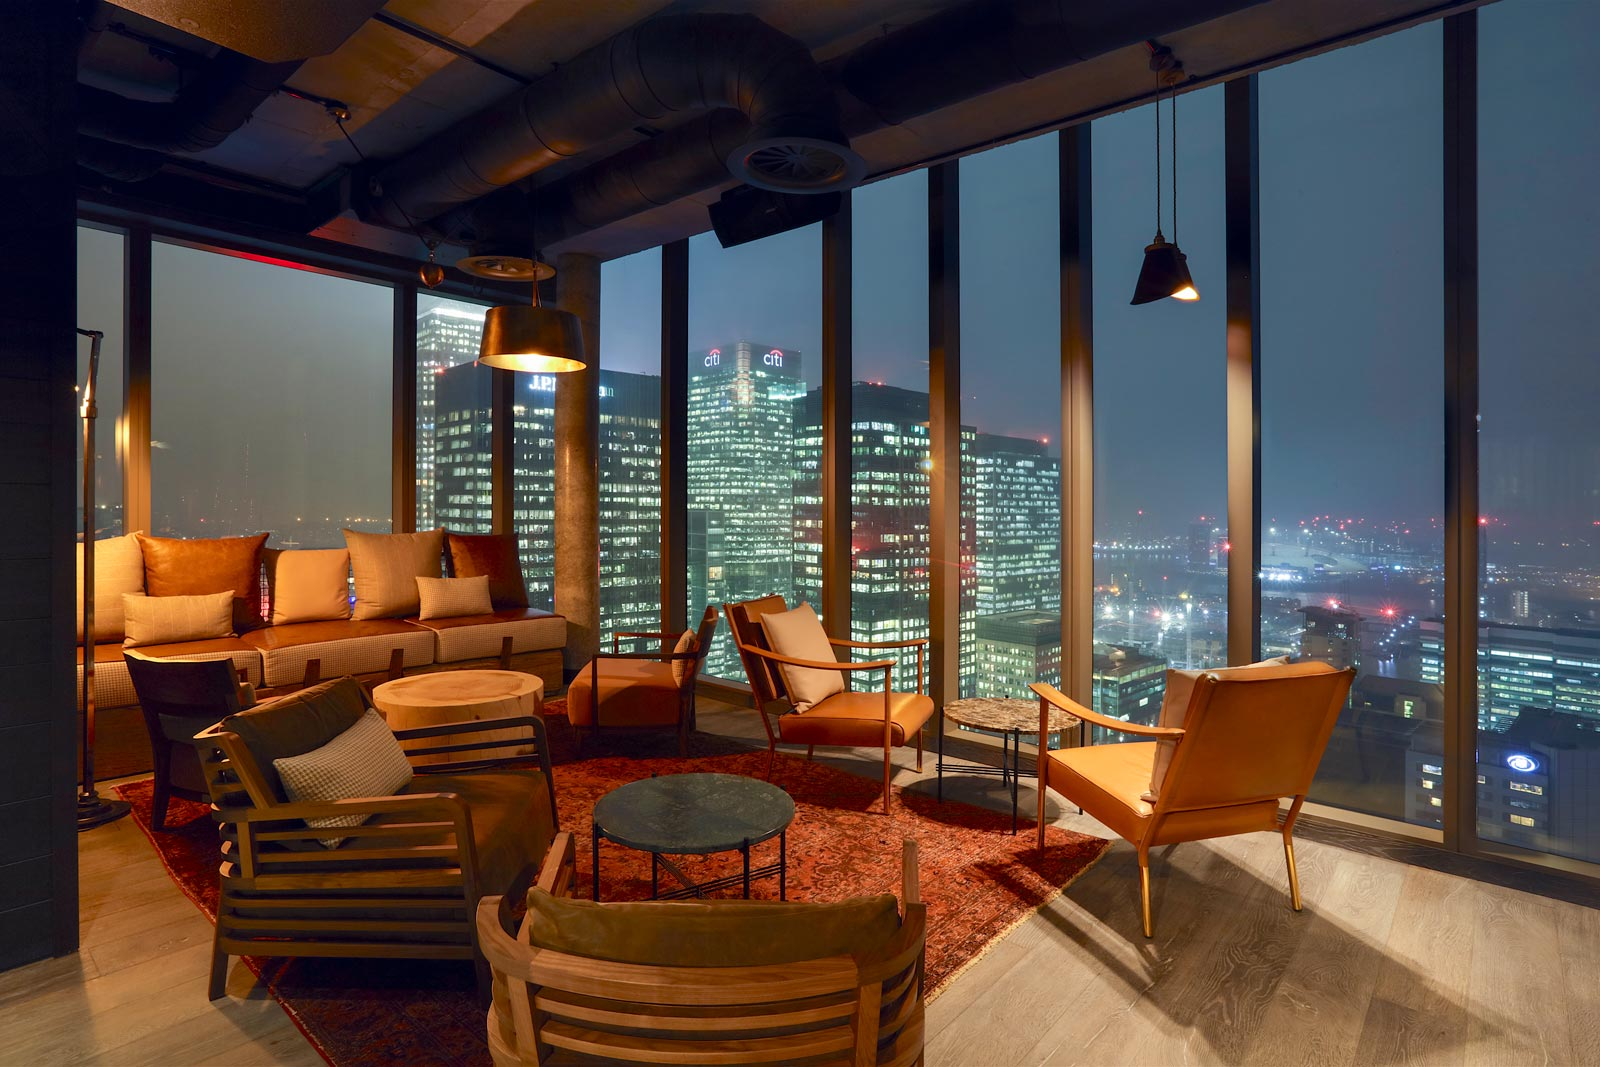 Stupendous Views from Bokan, Novotel London Canary Wharf 7